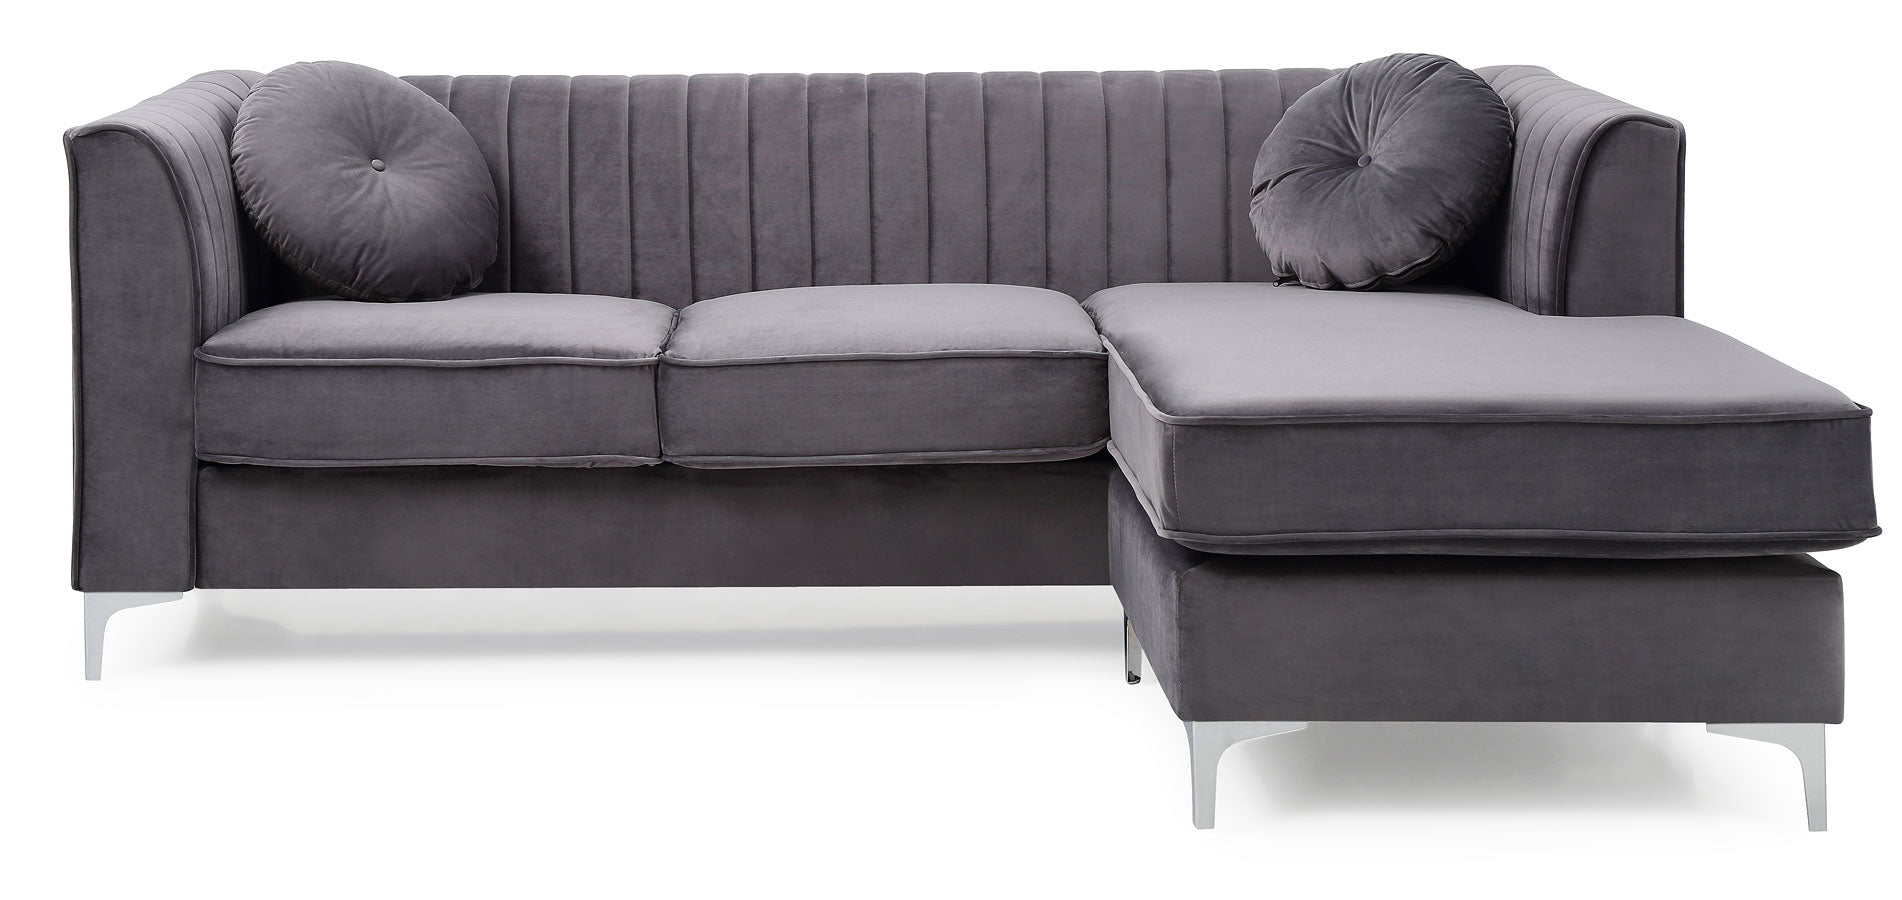 Amy\'s Reversible Sofa Chaise (Grey)